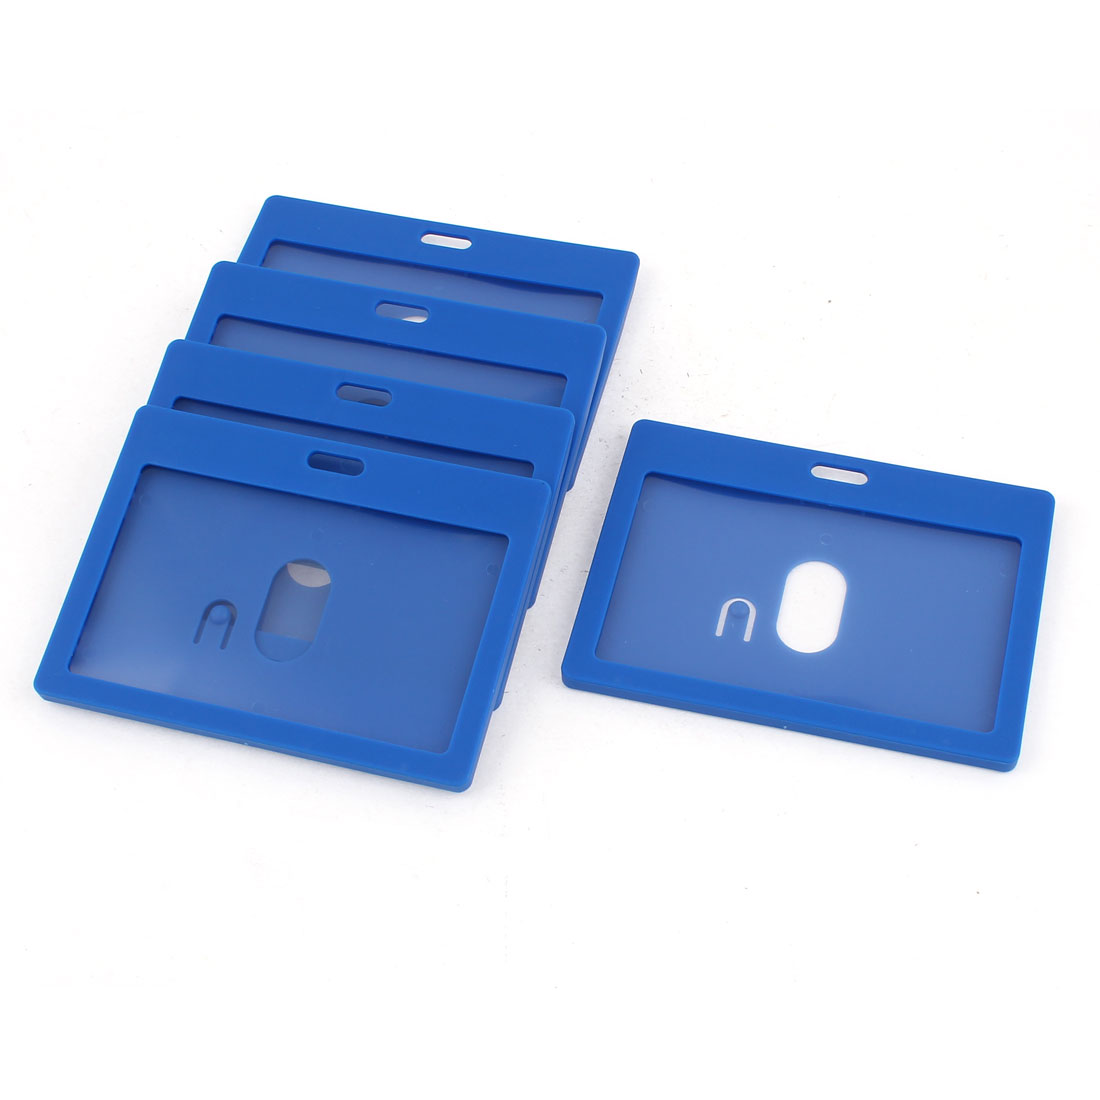 Unique Bargains 6pcs Plastic Blue Clear Rectangle Horizontal Office 9cm x 5.5cm Card Holder